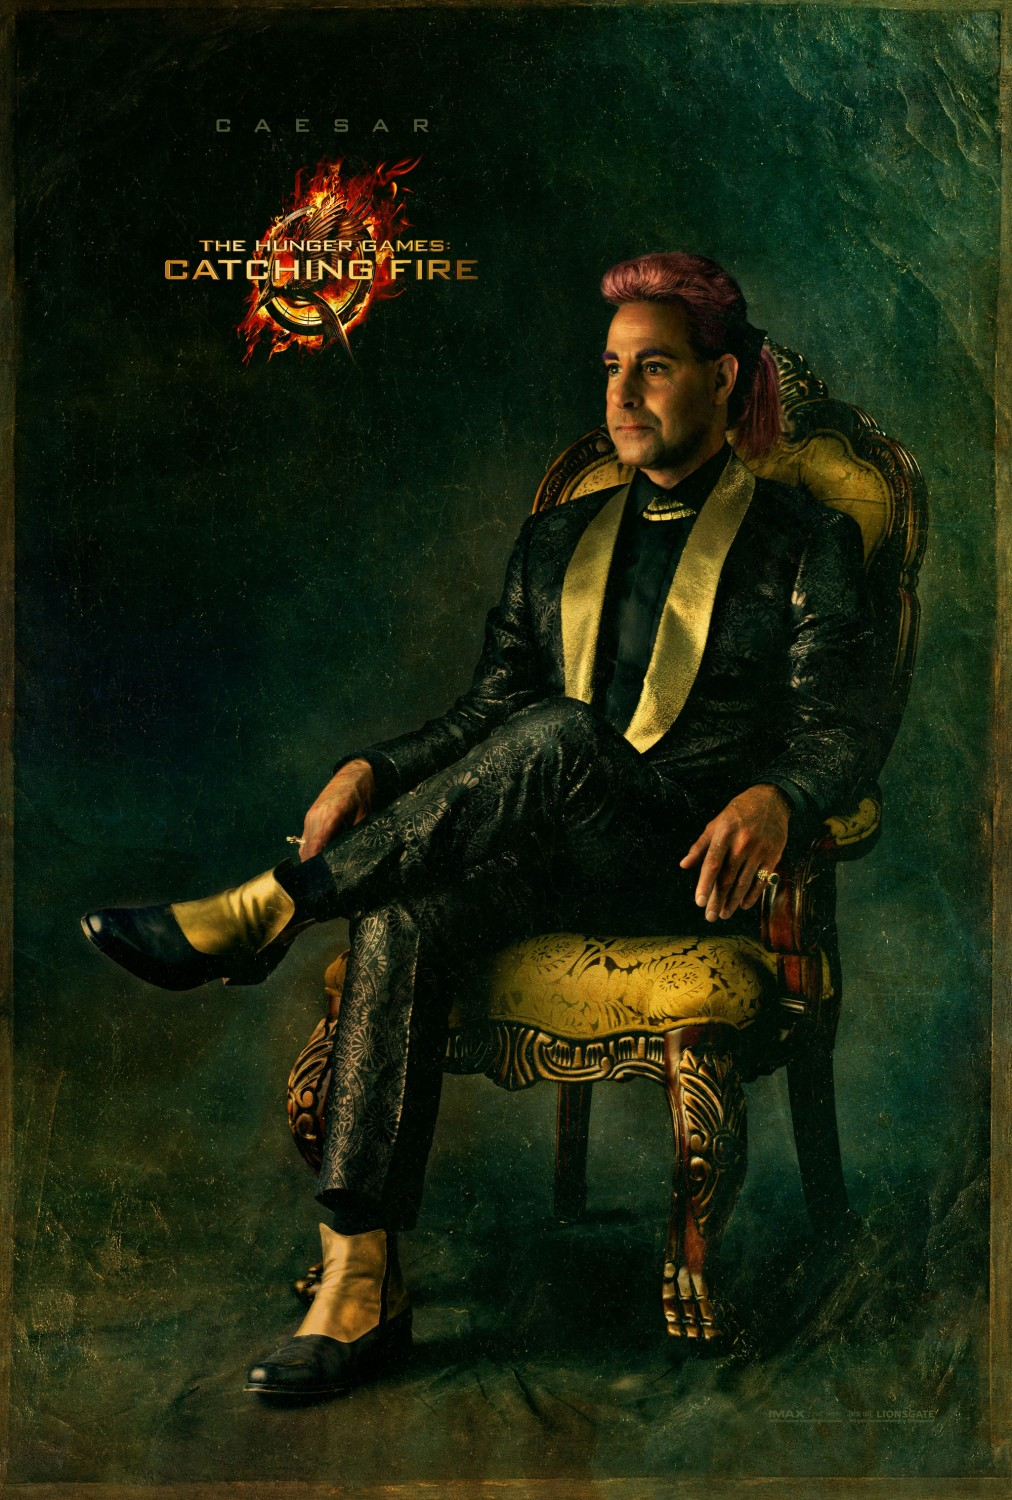 The Hunger Games Catching Fire - Poster - 005 - Caesar